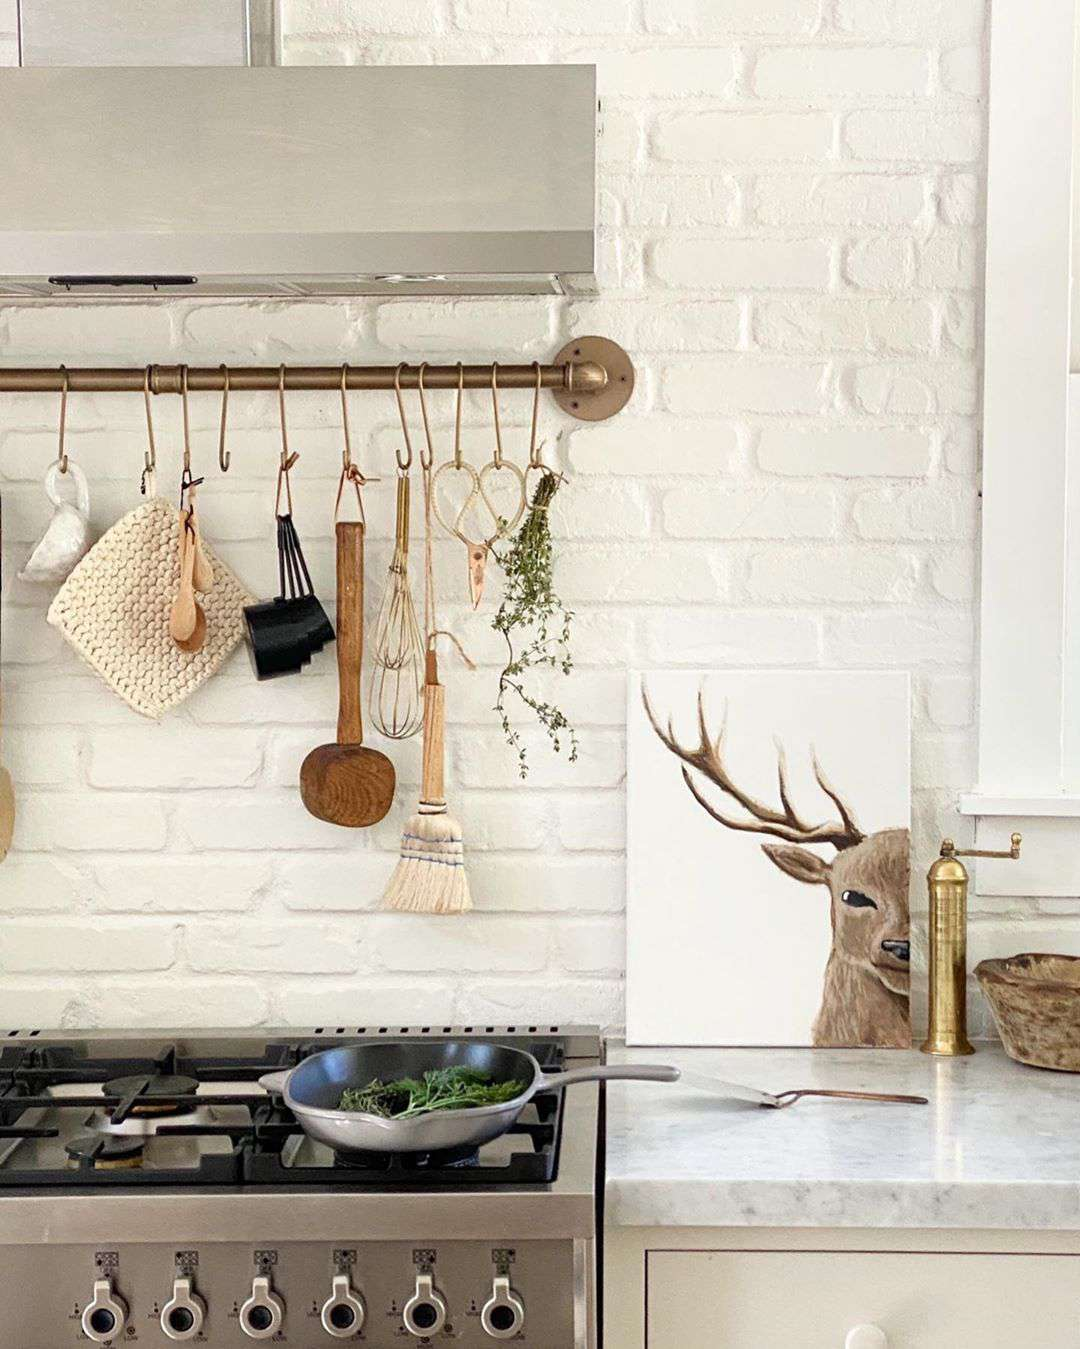 best kitchen ideas - hanging utensils over the stovetop